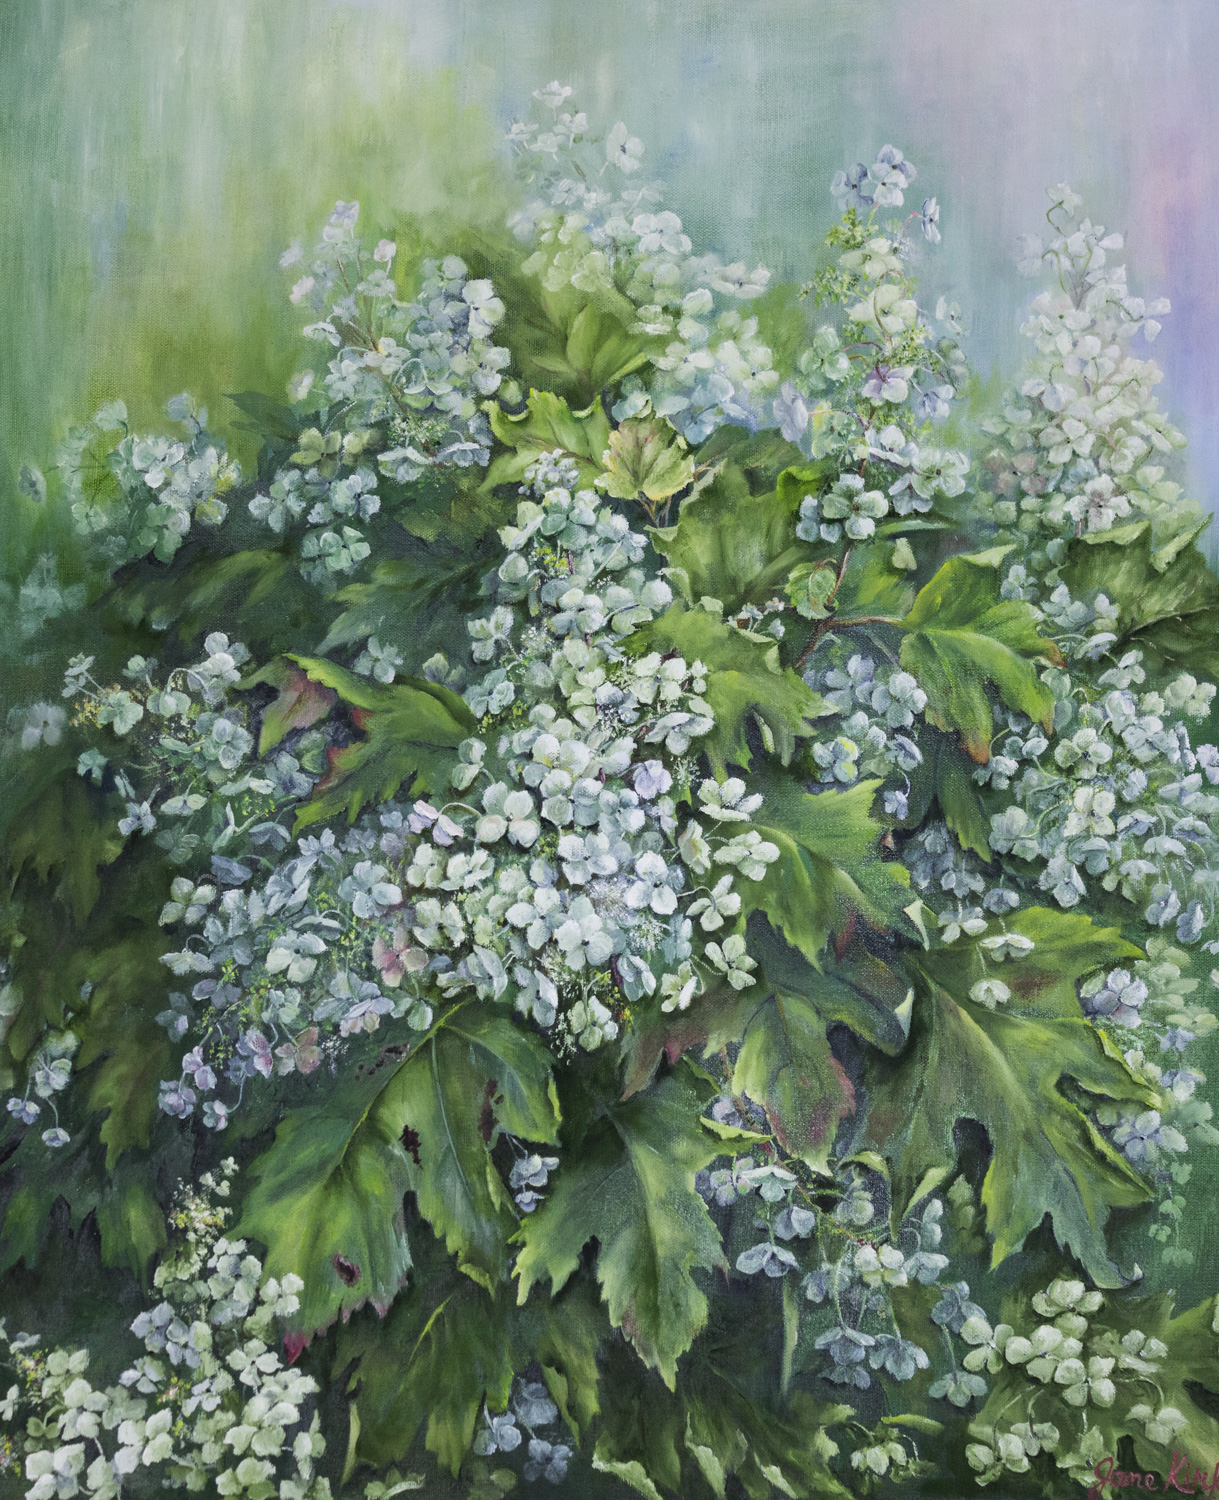 Hydrangeas by Jane Kirk, Oil, Donation